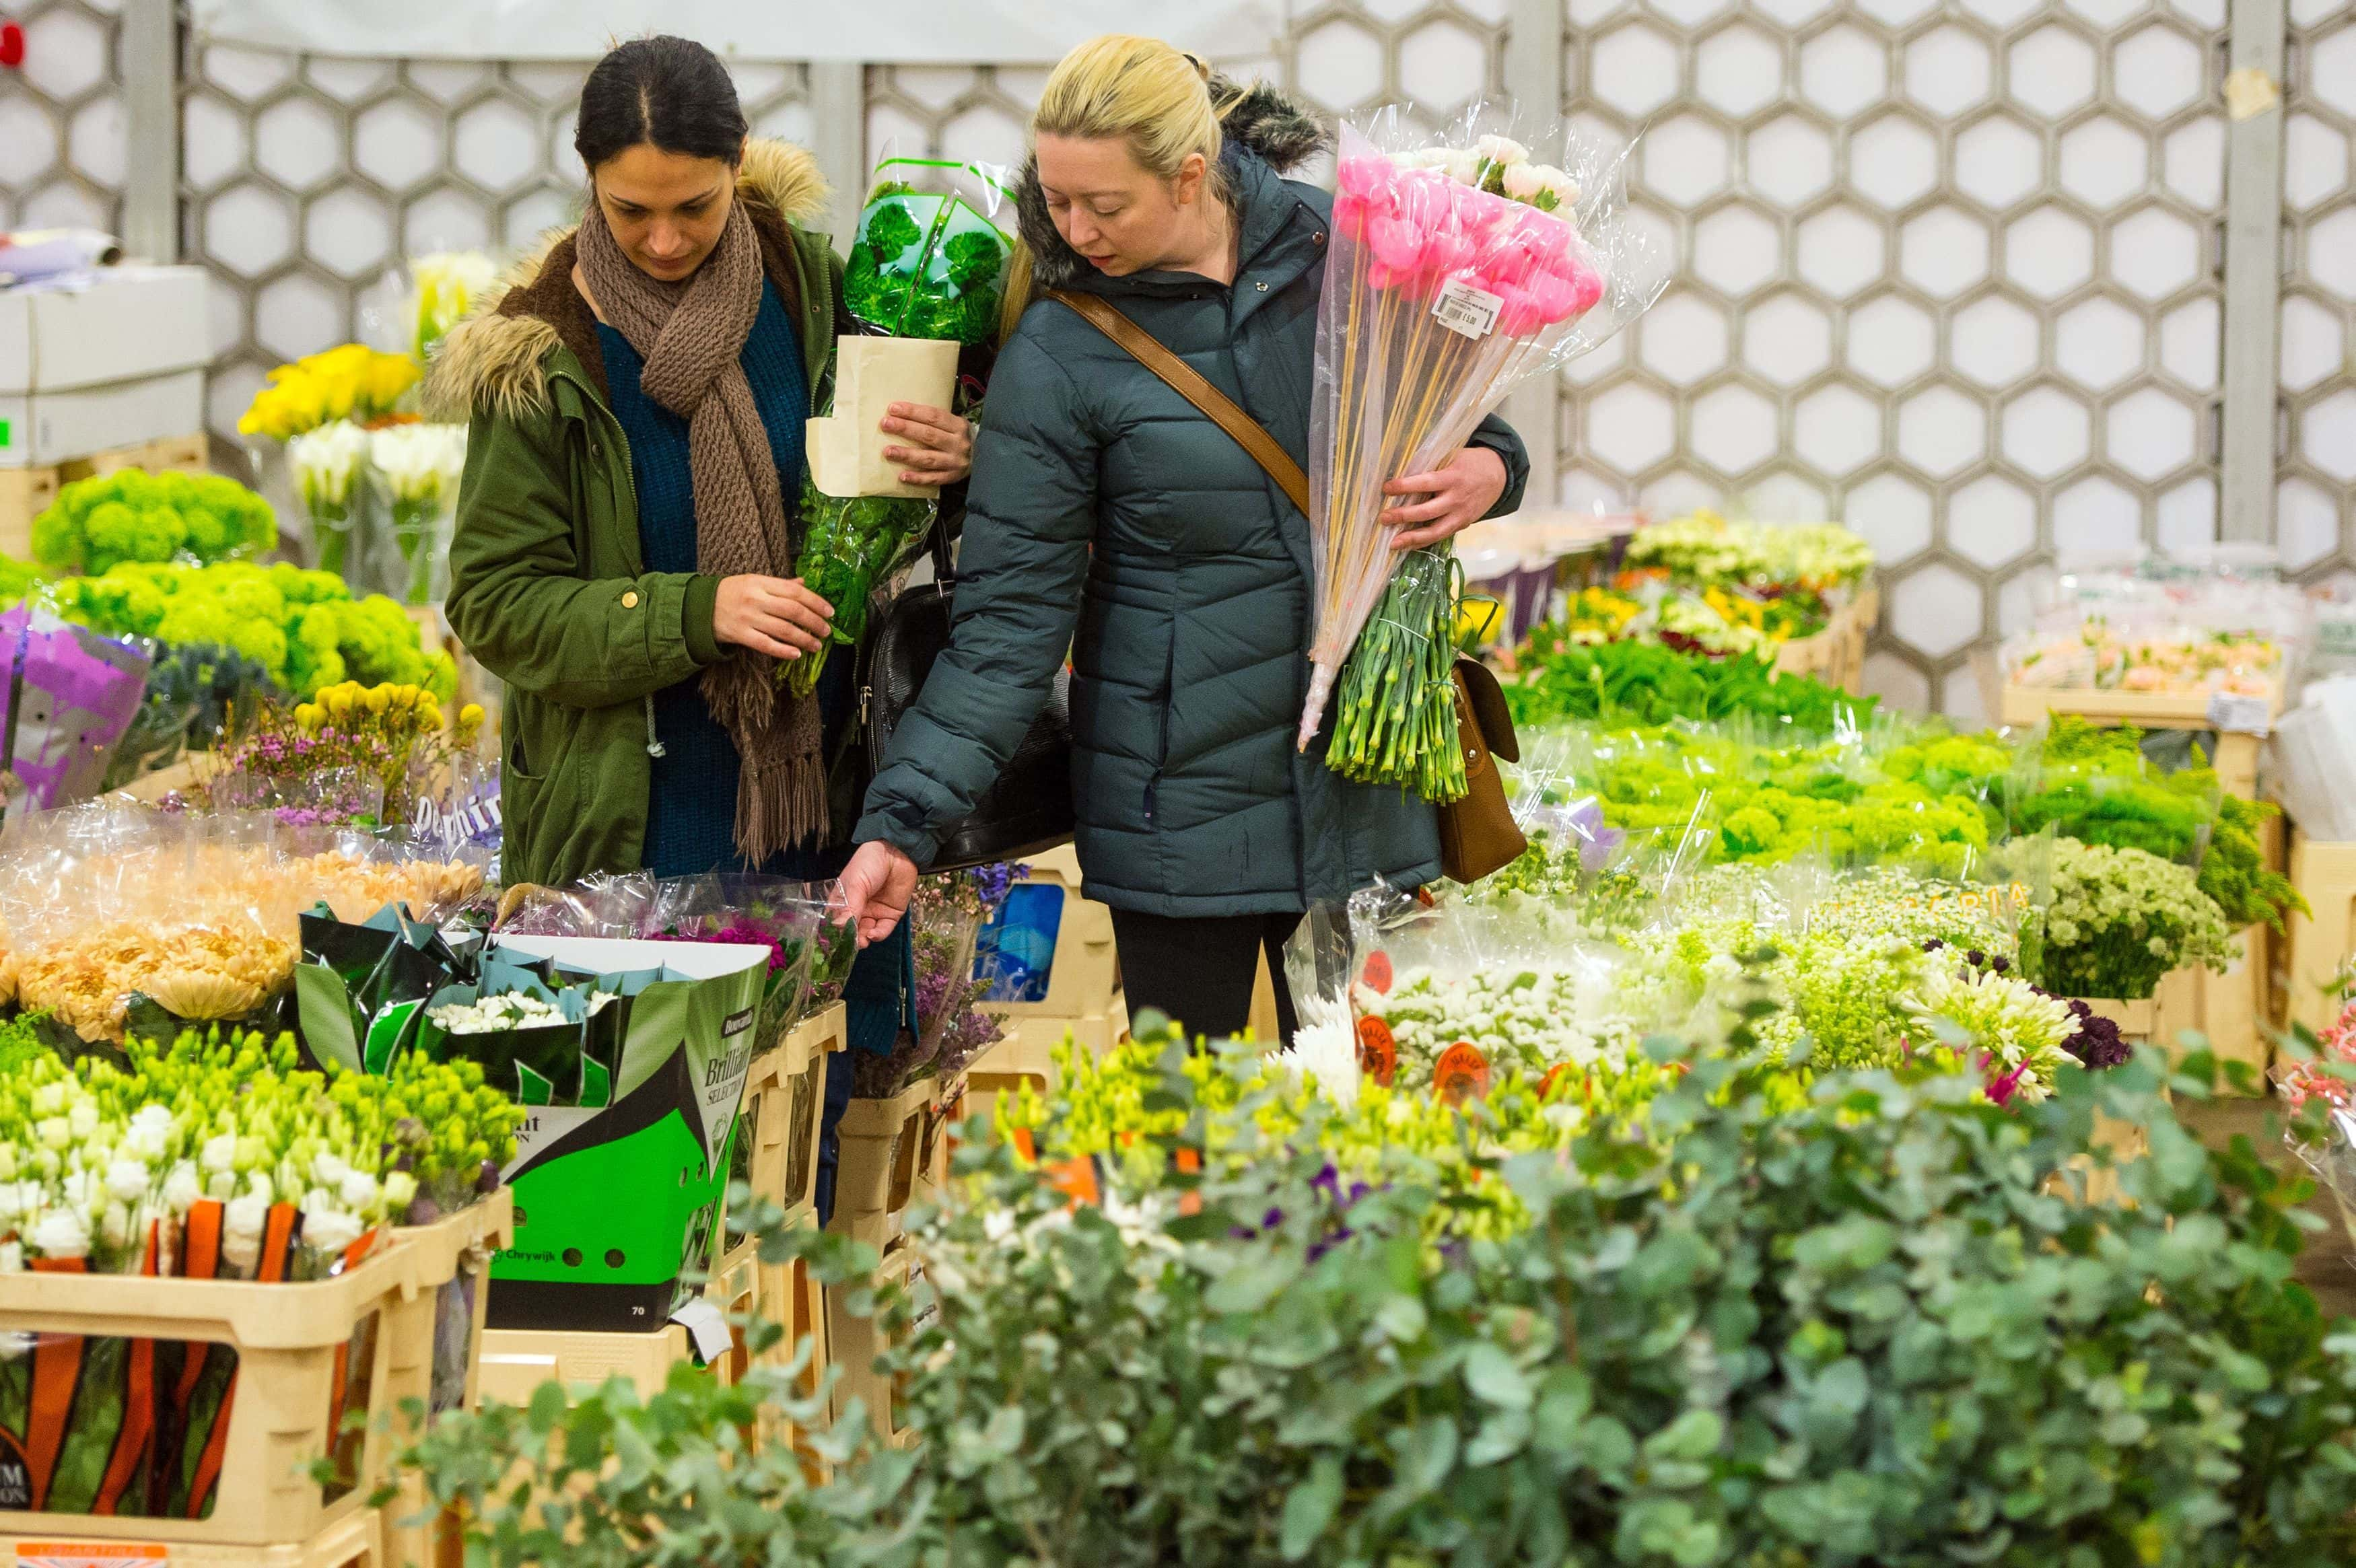 Two women browse produce at New Covent Garden Flower Market, which is the UK's largest wholesale flower market, in Nine Elms, London, ahead of Mothering Sunday this weekend.